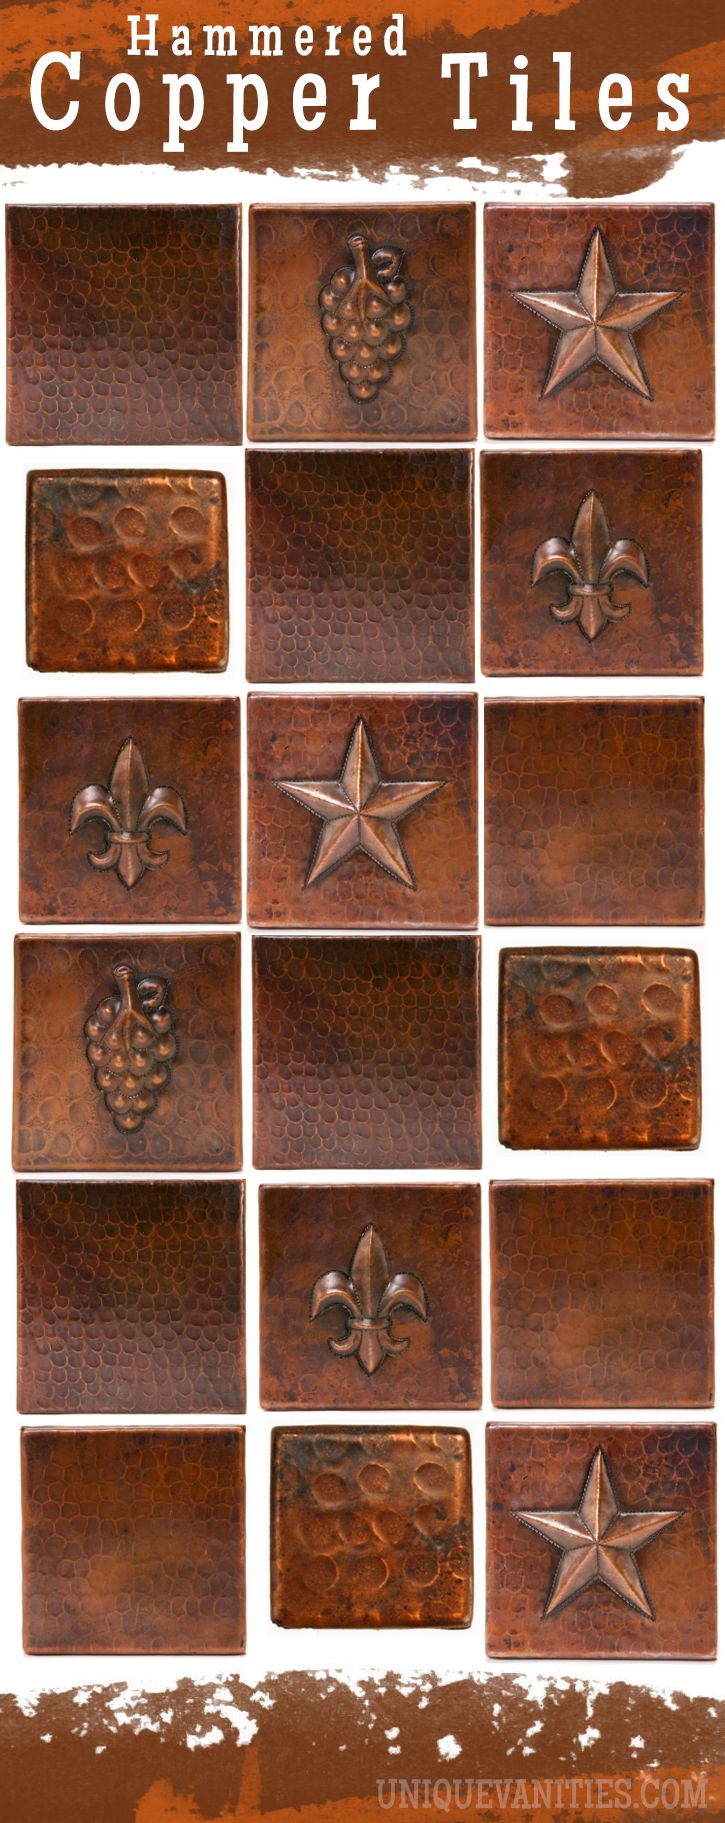 Making nautical bathroom d 233 cor by yourself bathroom designs ideas - Hammered Copper Tiles